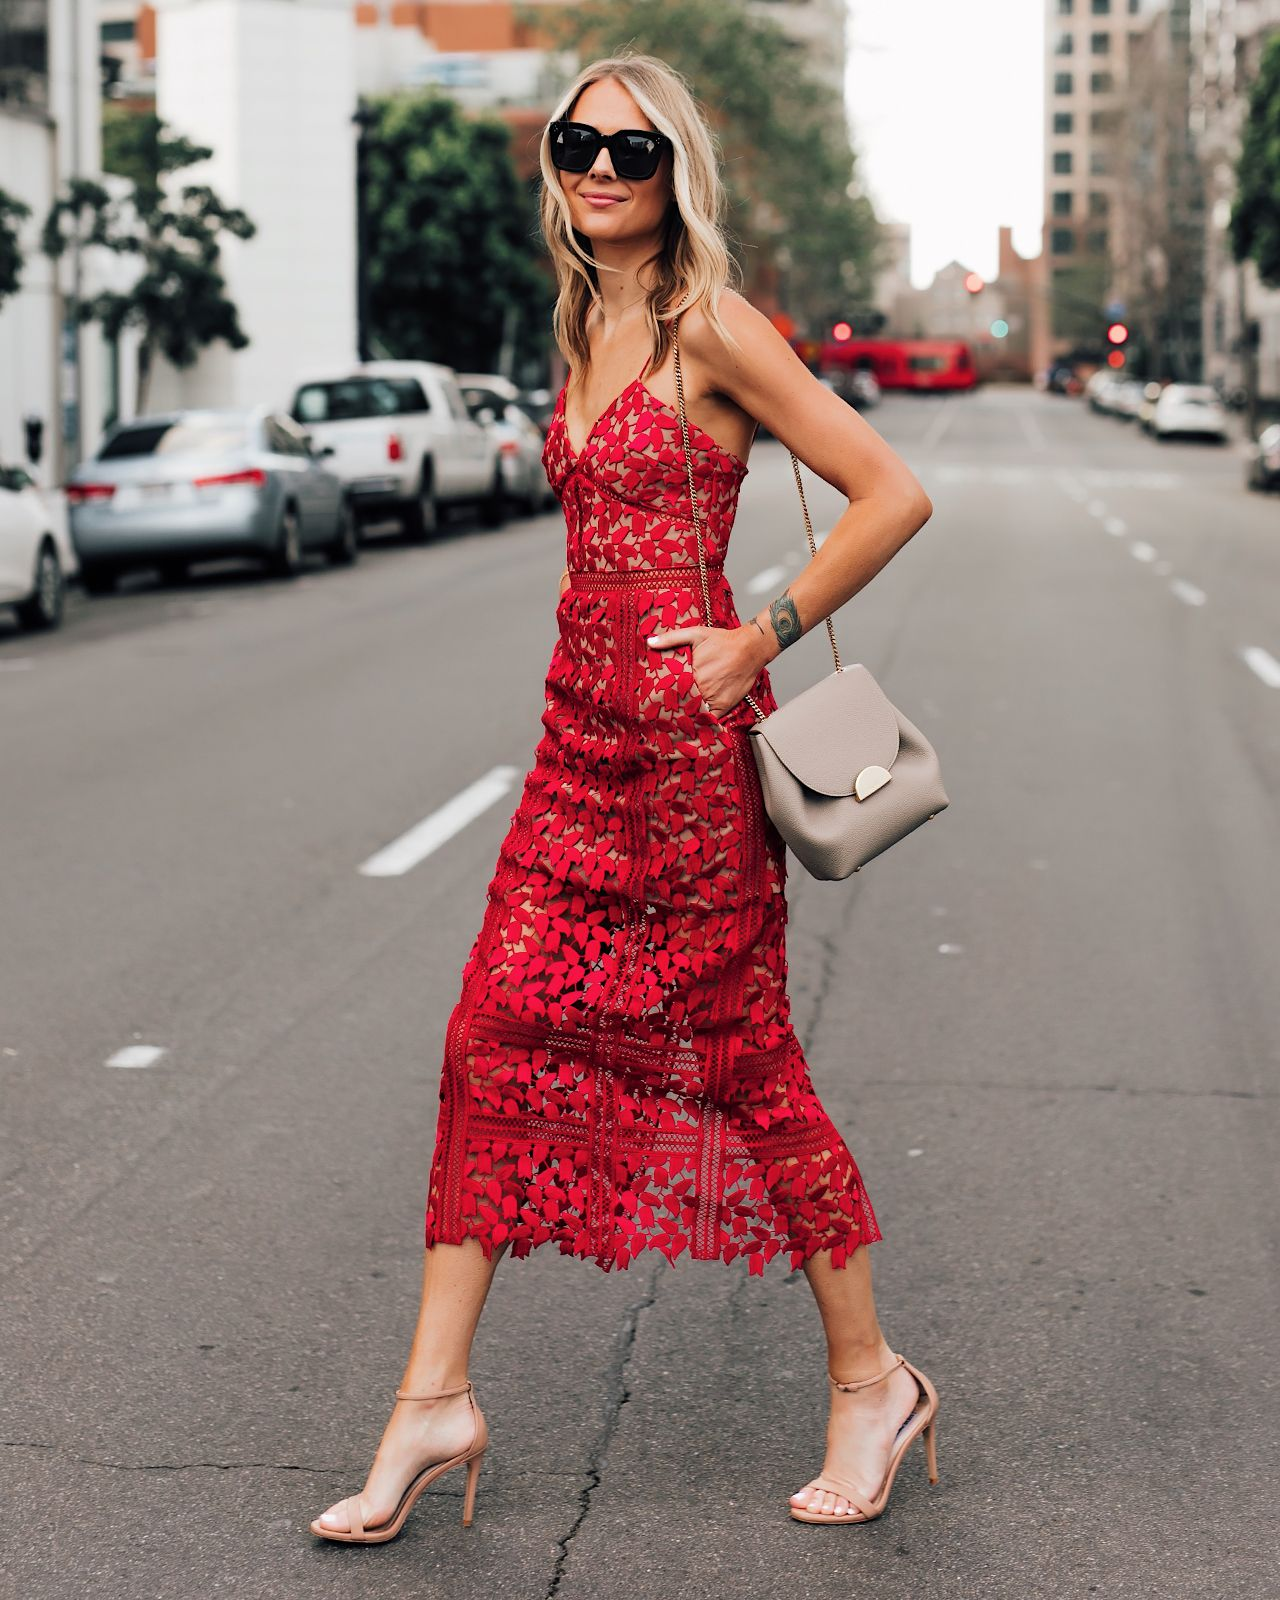 Shopbop Sale Red Self Portrait Dress Lace Self Portrait Dress Cocktail Dress Wedding Guest Dress In 2020 Fashion Jackson Red Lace Dress Red Lace Midi Dress